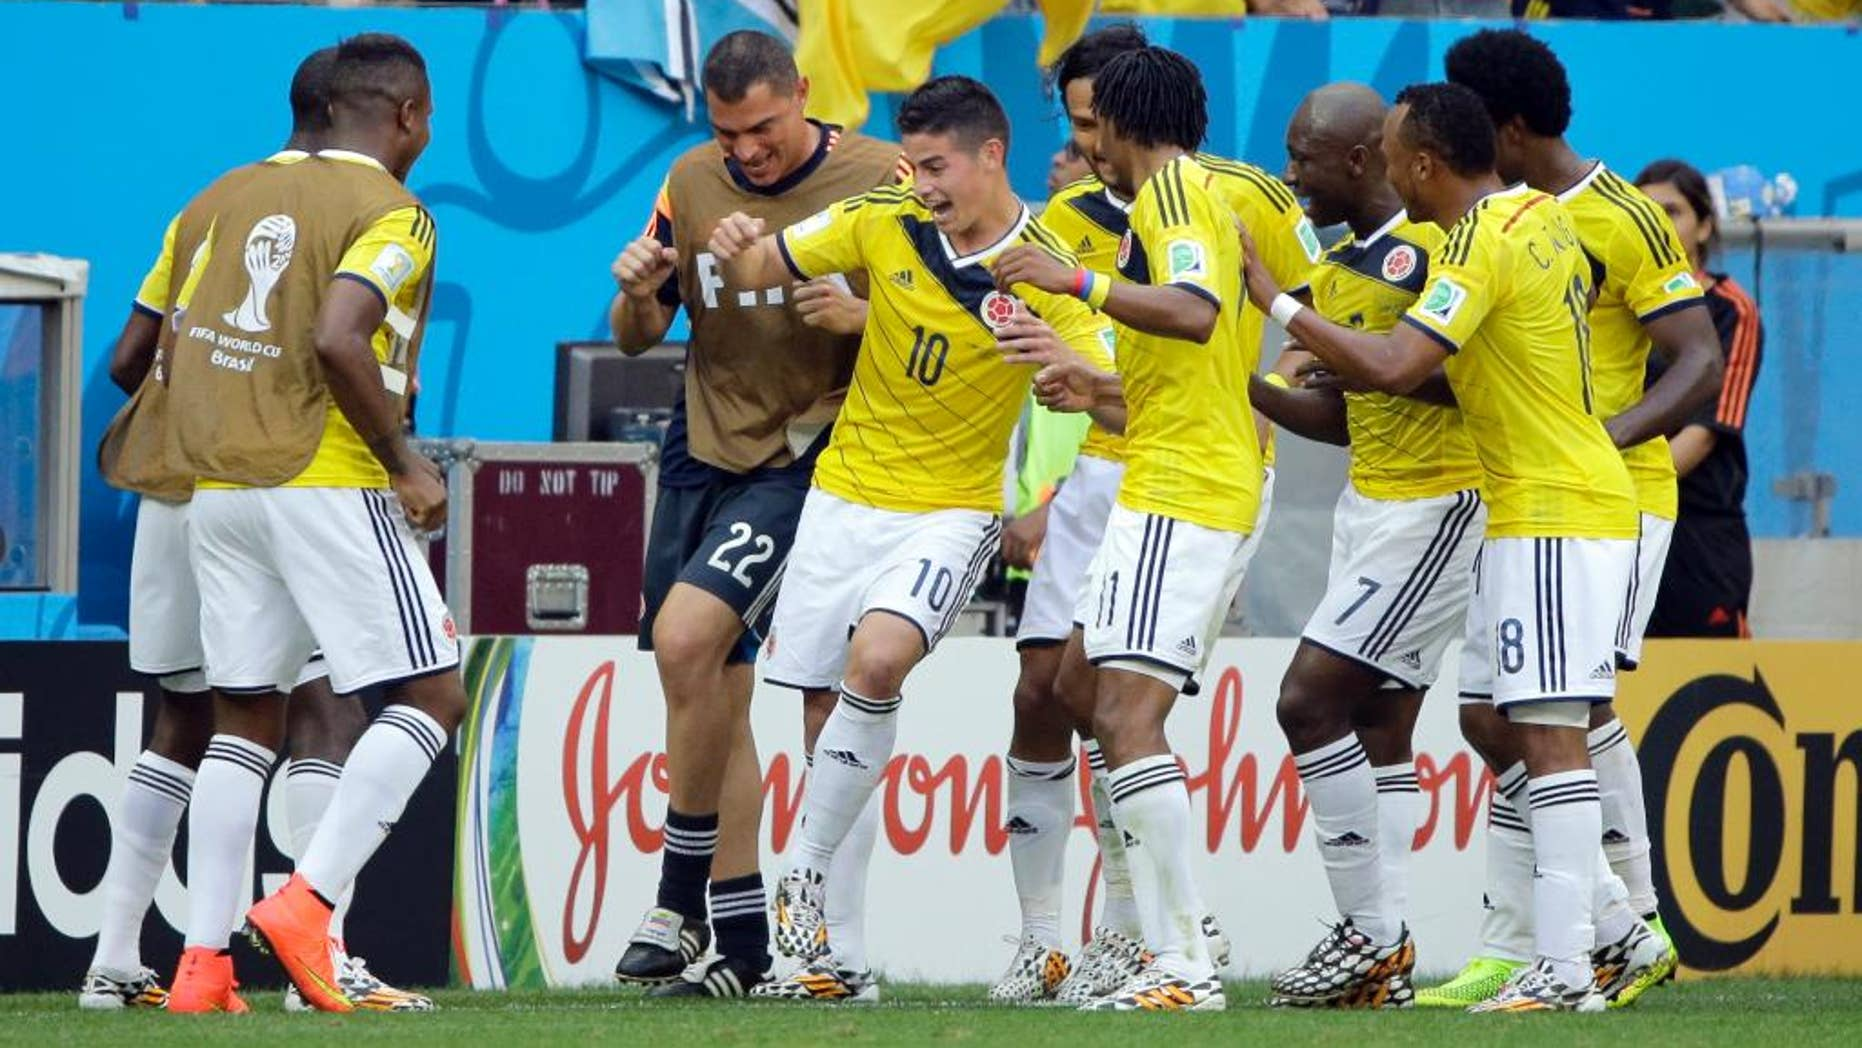 Colombia's James Rodriguez (10) celebrates with his teammates after scoring the opening goal during the group C World Cup soccer match between Colombia and Ivory Coast at the Estadio Nacional in Brasilia, Brazil, Thursday, June 19, 2014.  (AP Photo/Sergei Grits)